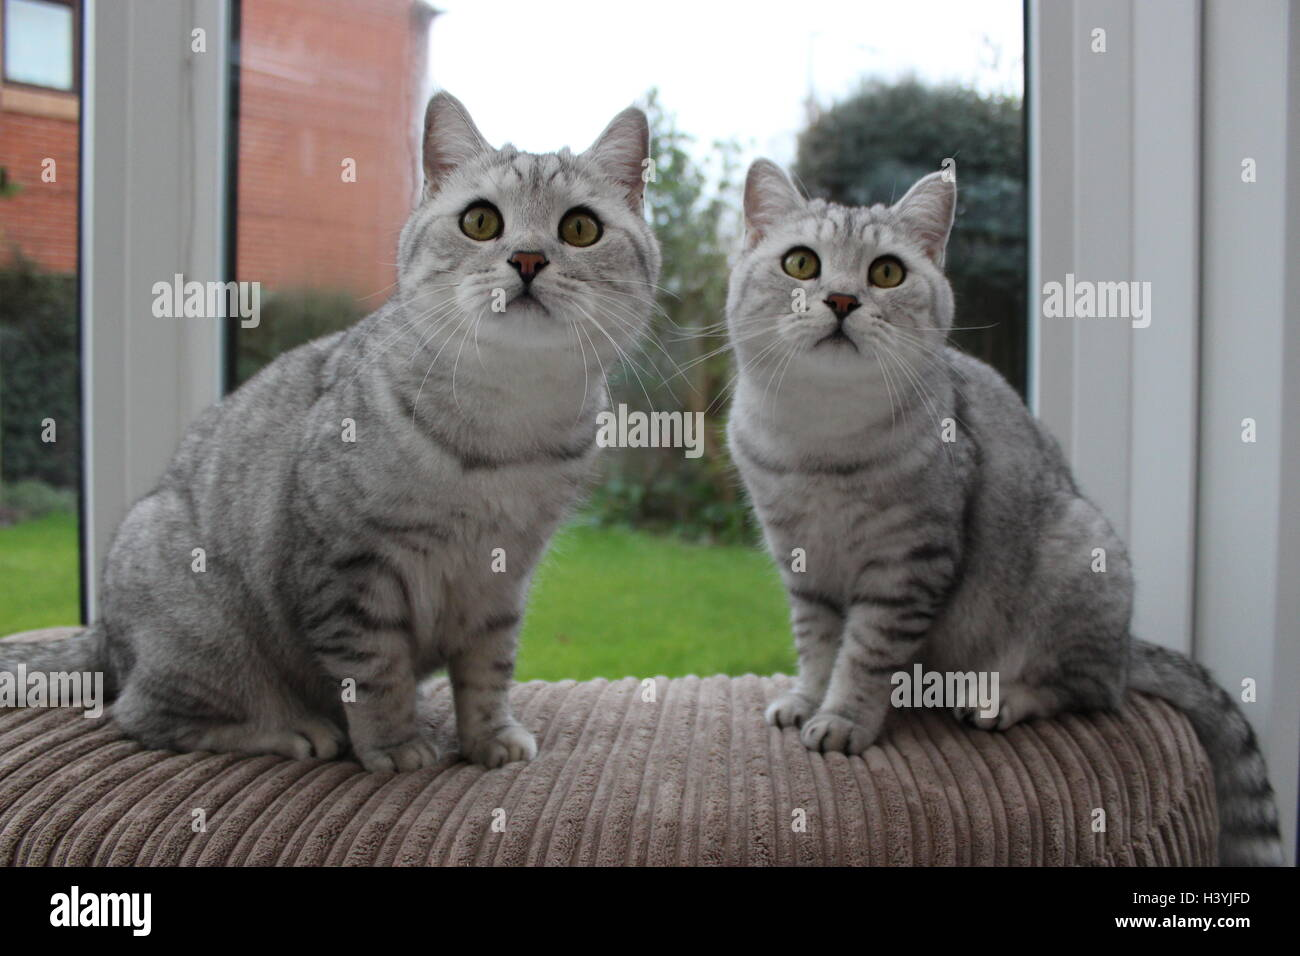 Two British Shorthair twin brother cats looking curious - Stock Image